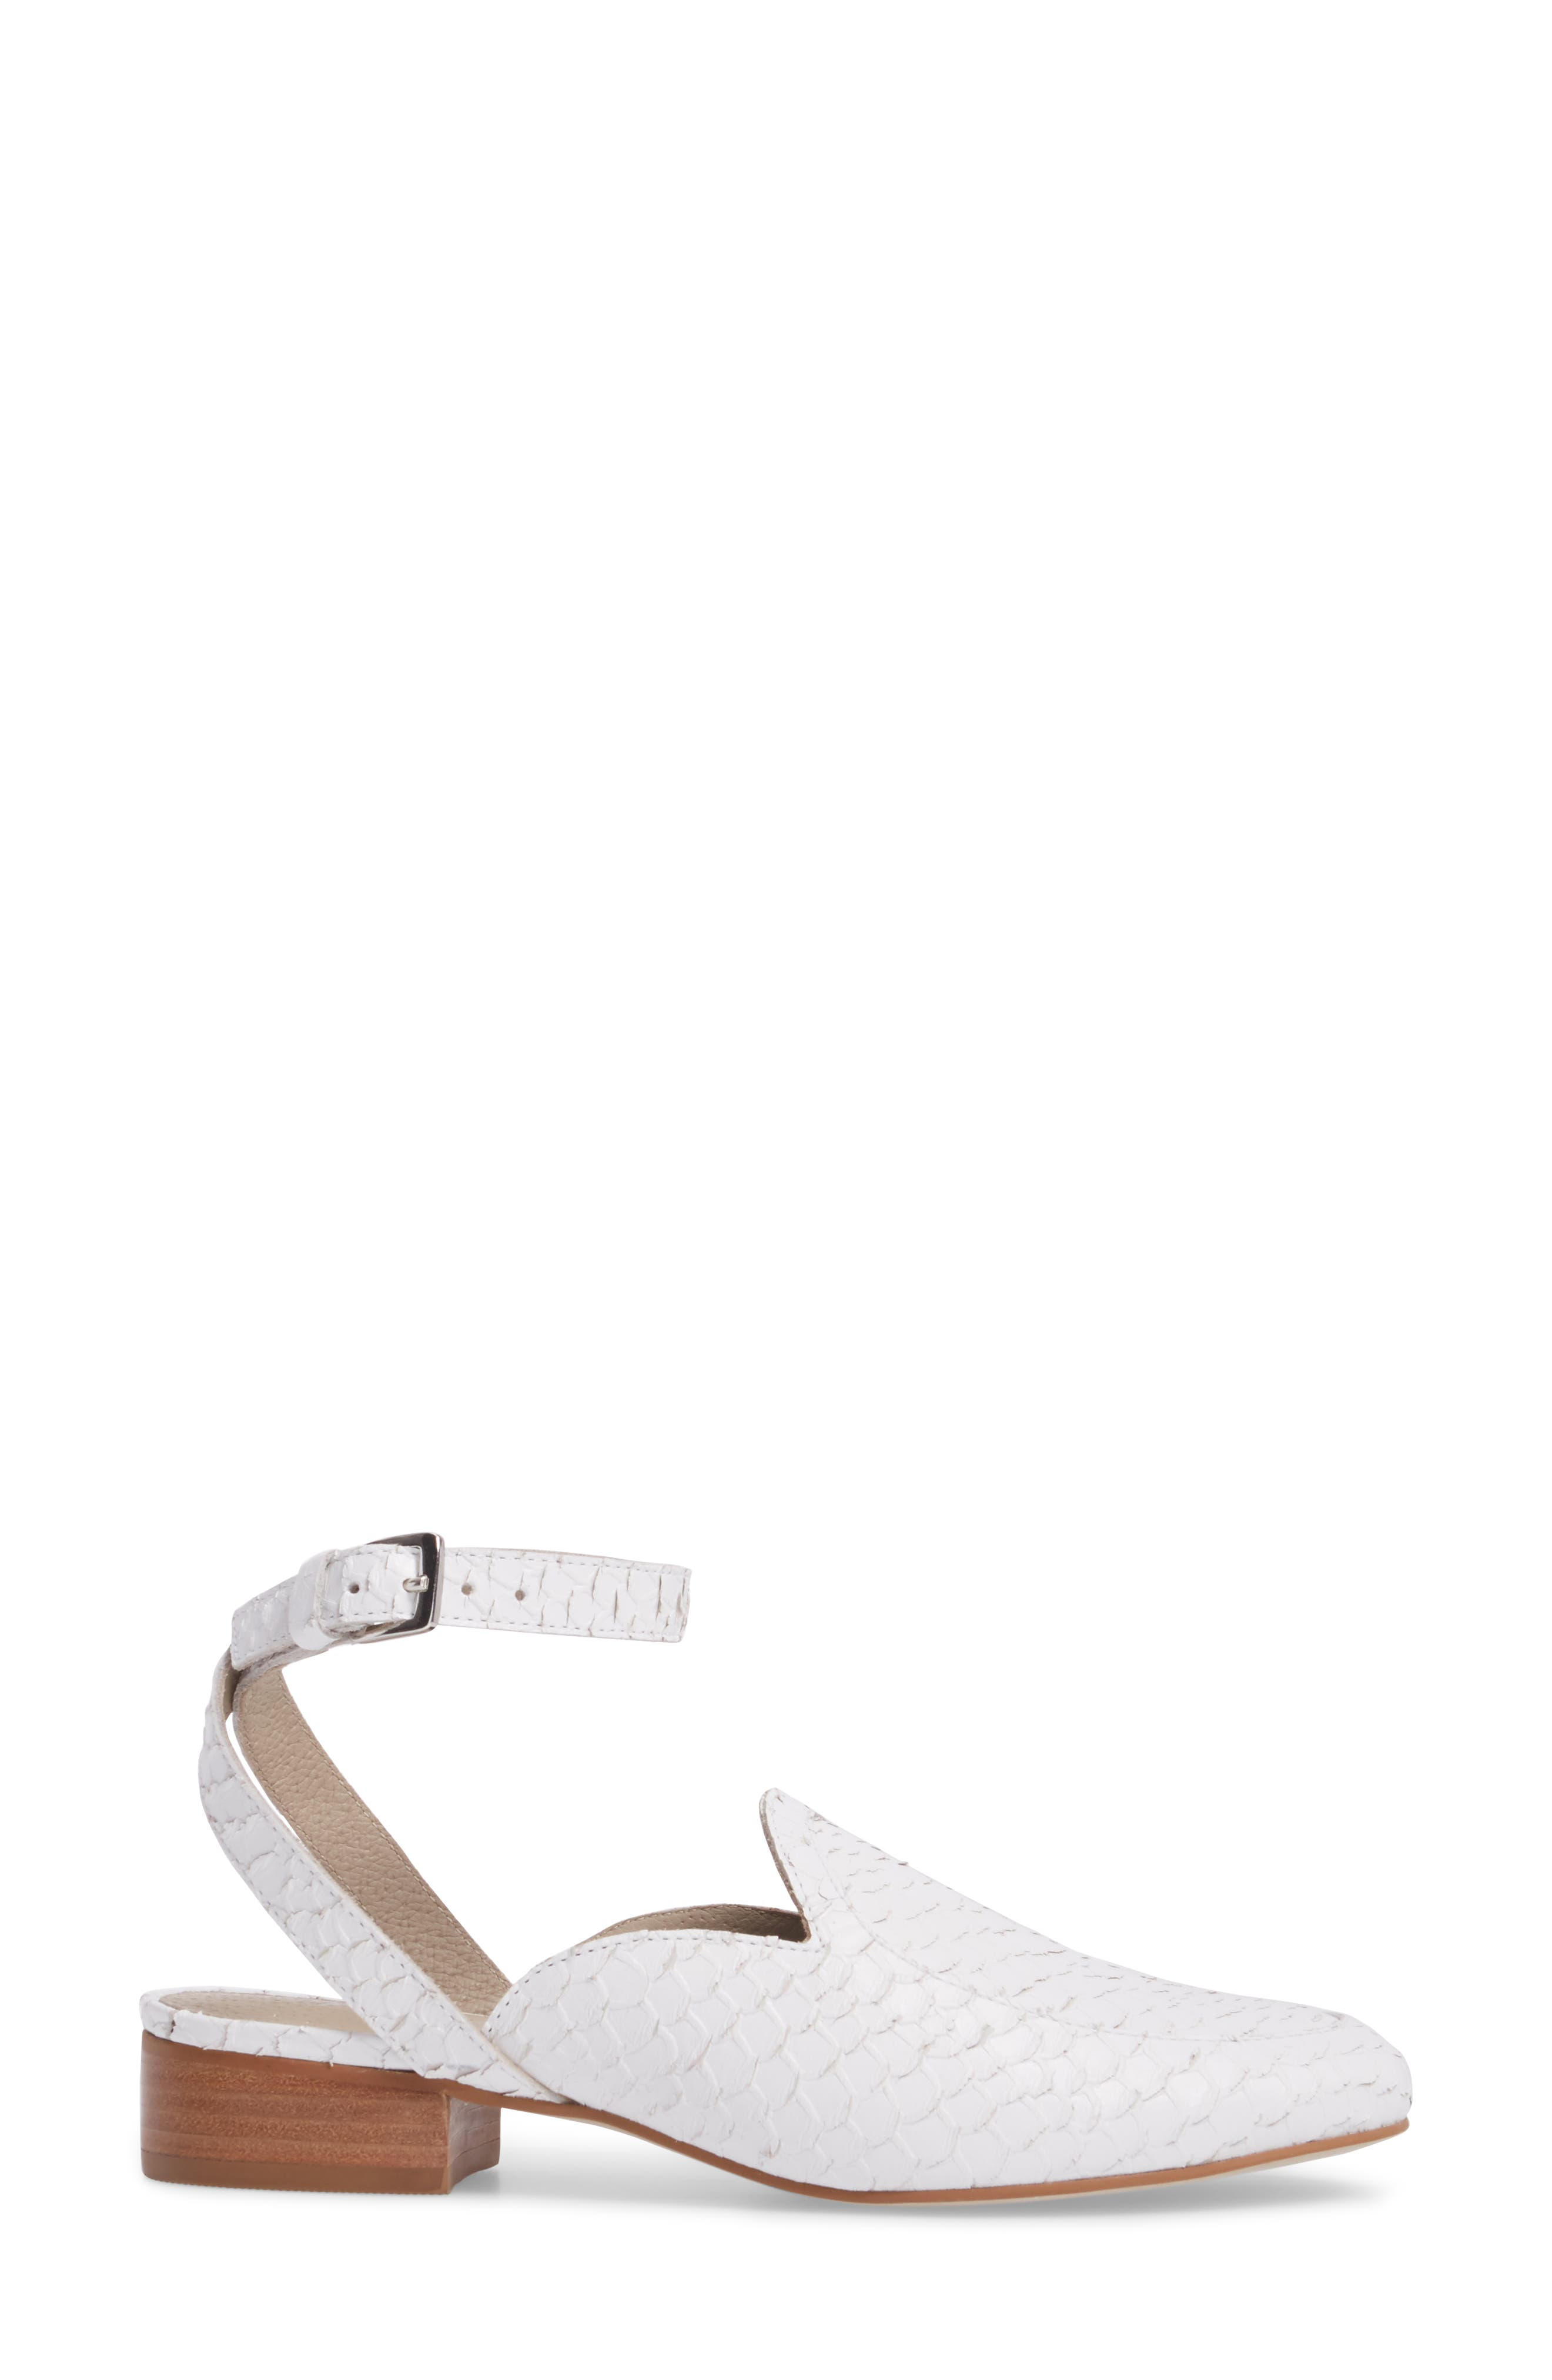 Half Moon Ankle Strap Loafer,                             Alternate thumbnail 3, color,                             White Leather